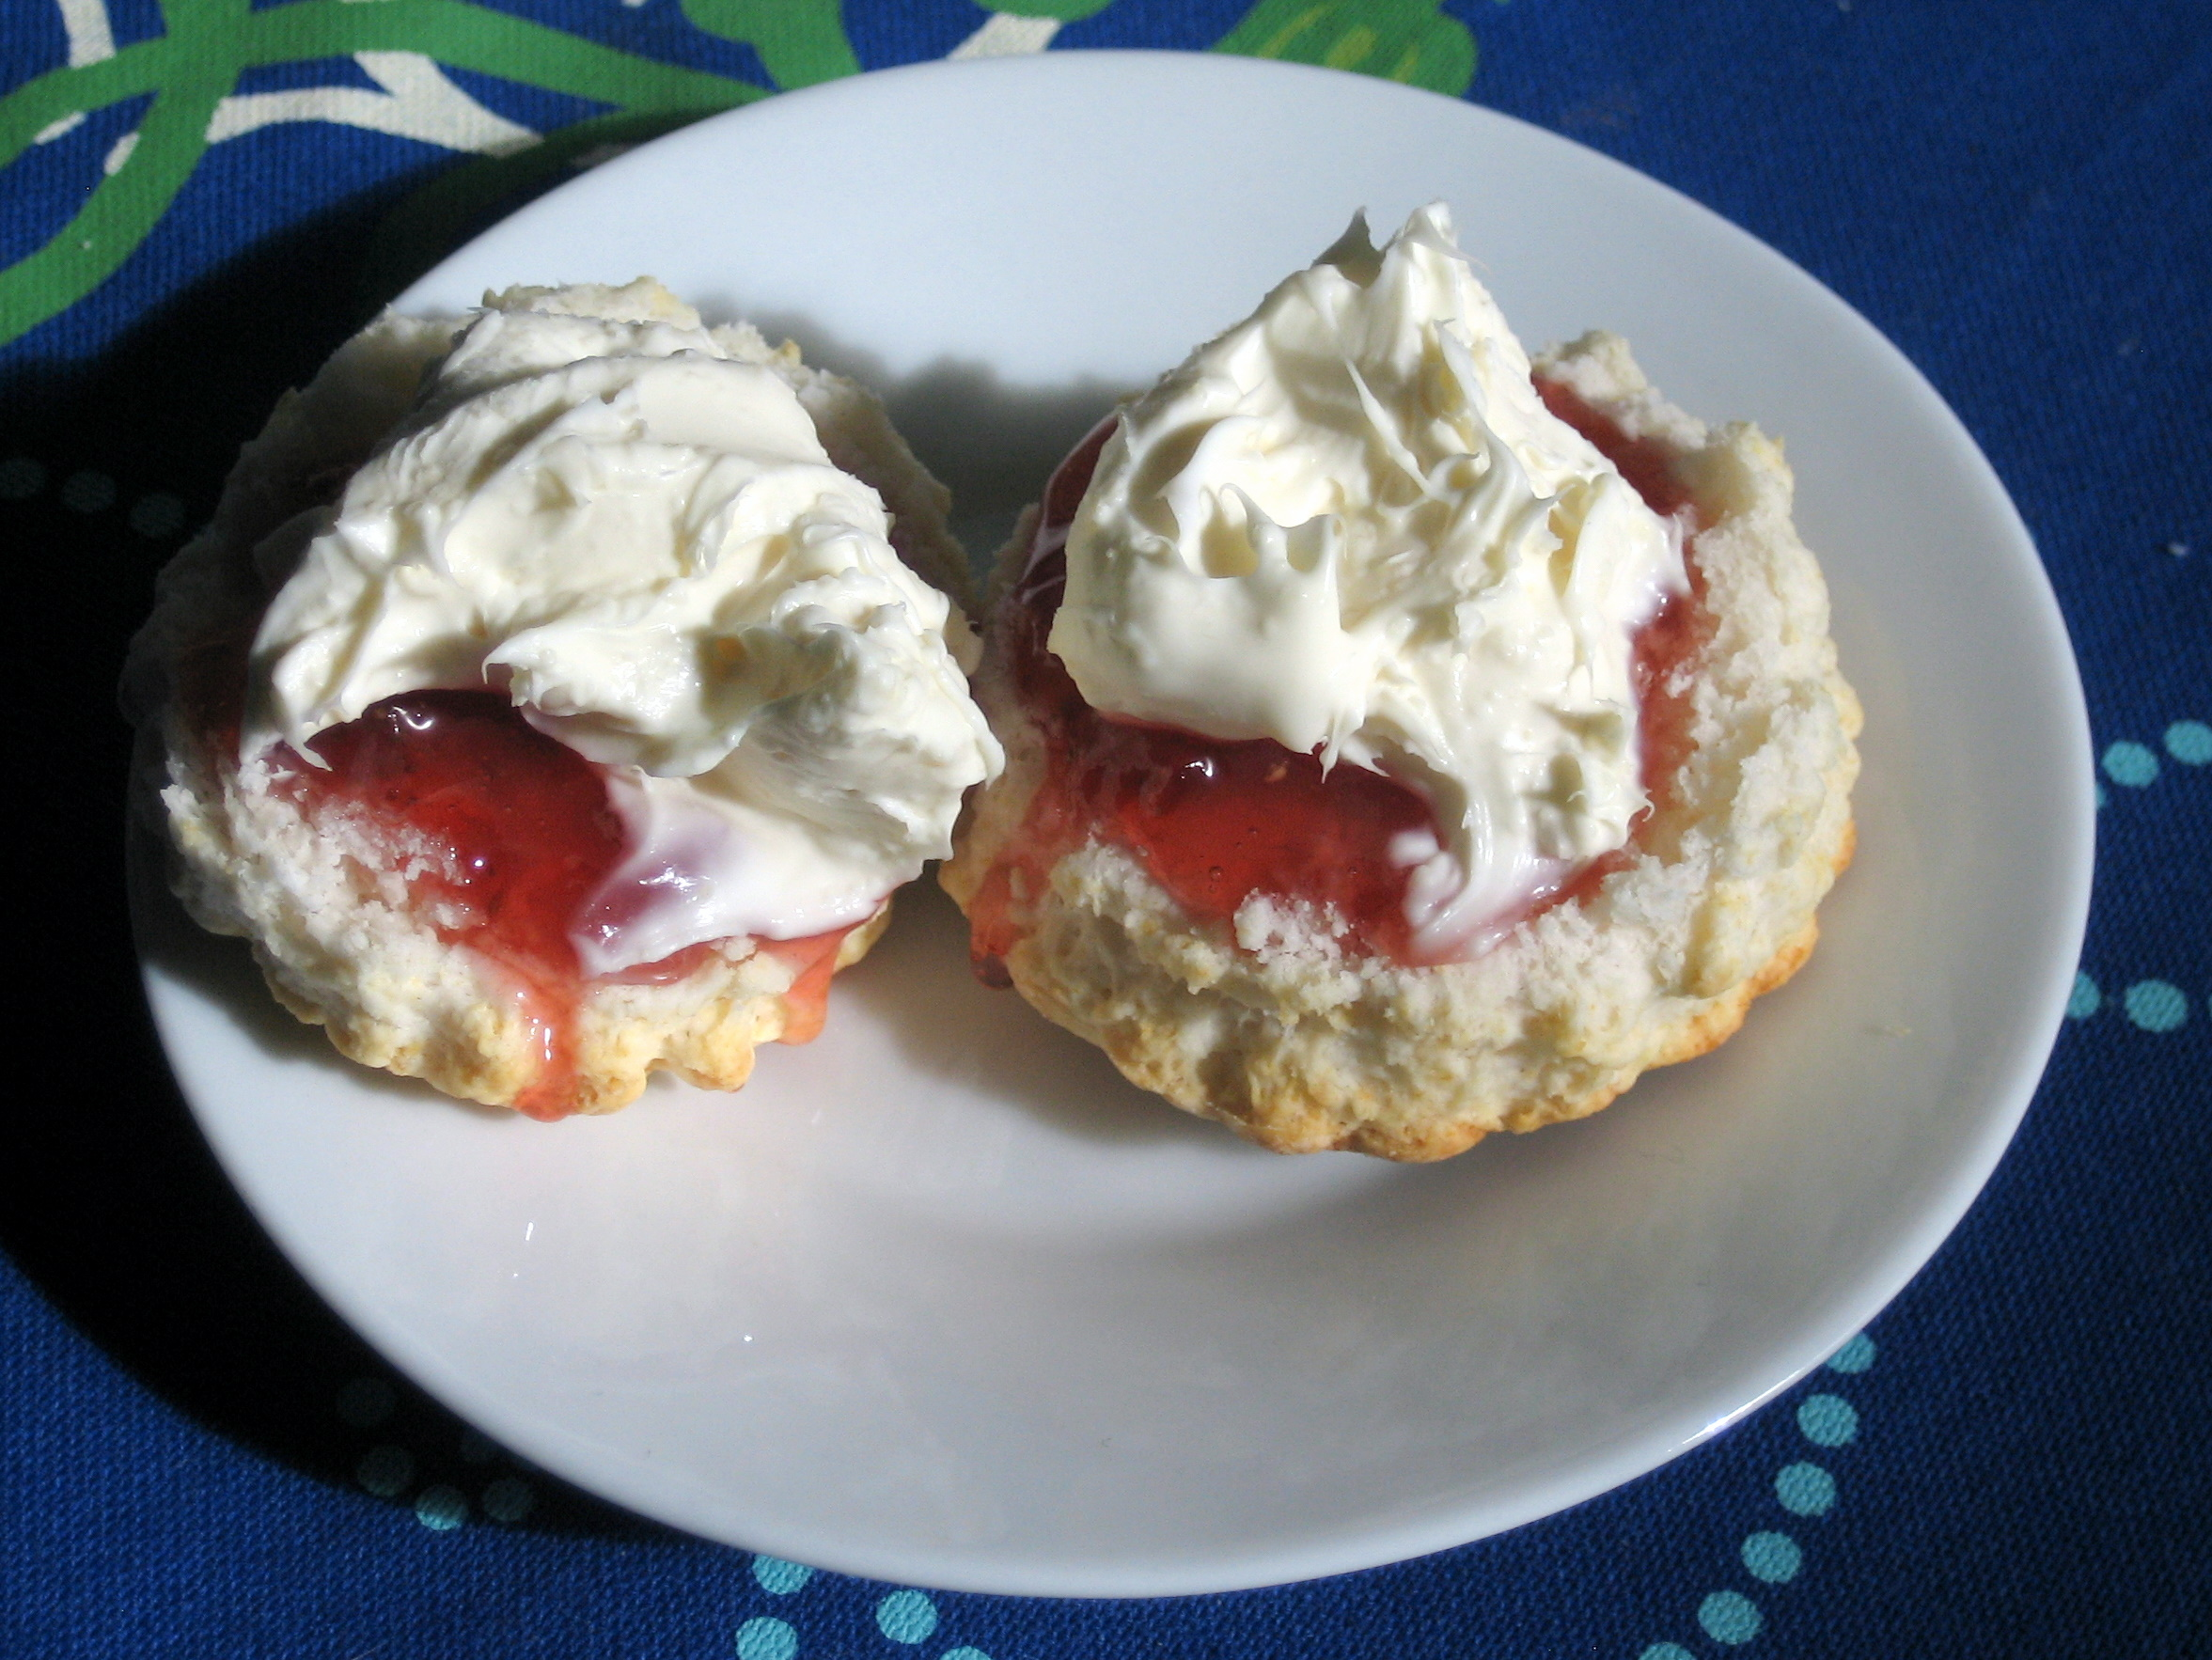 Blakemere pix scones jam and cream